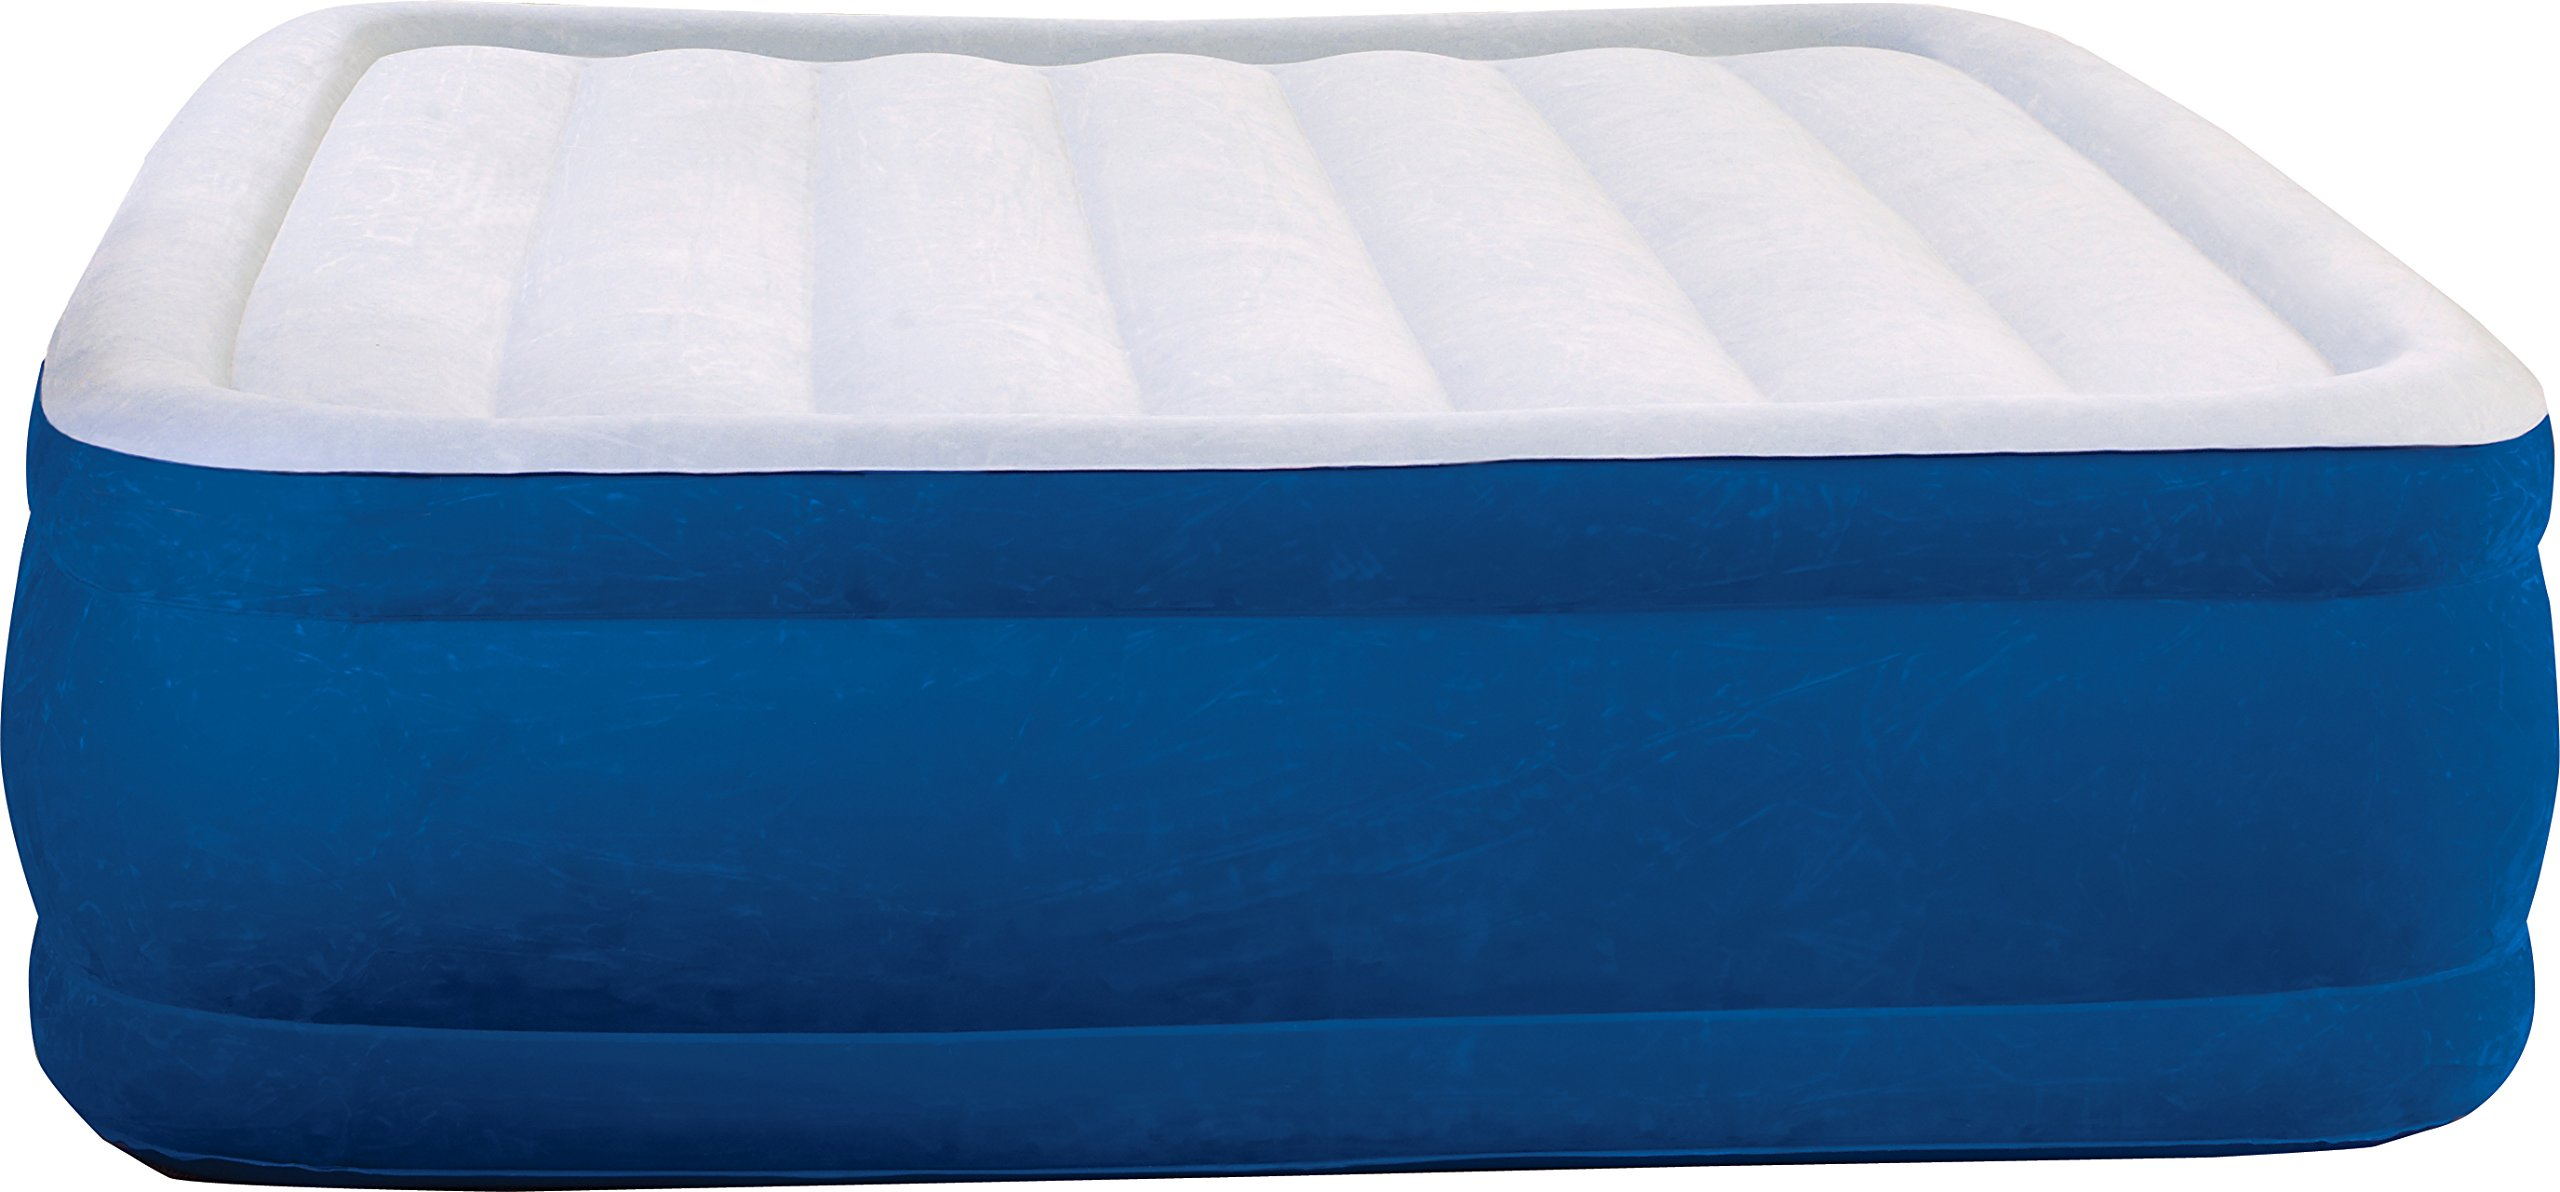 Simmons Beautyrest Plush Aire Inflatable Air Mattress: Raised-Profile Air Bed with External Pump, Queen